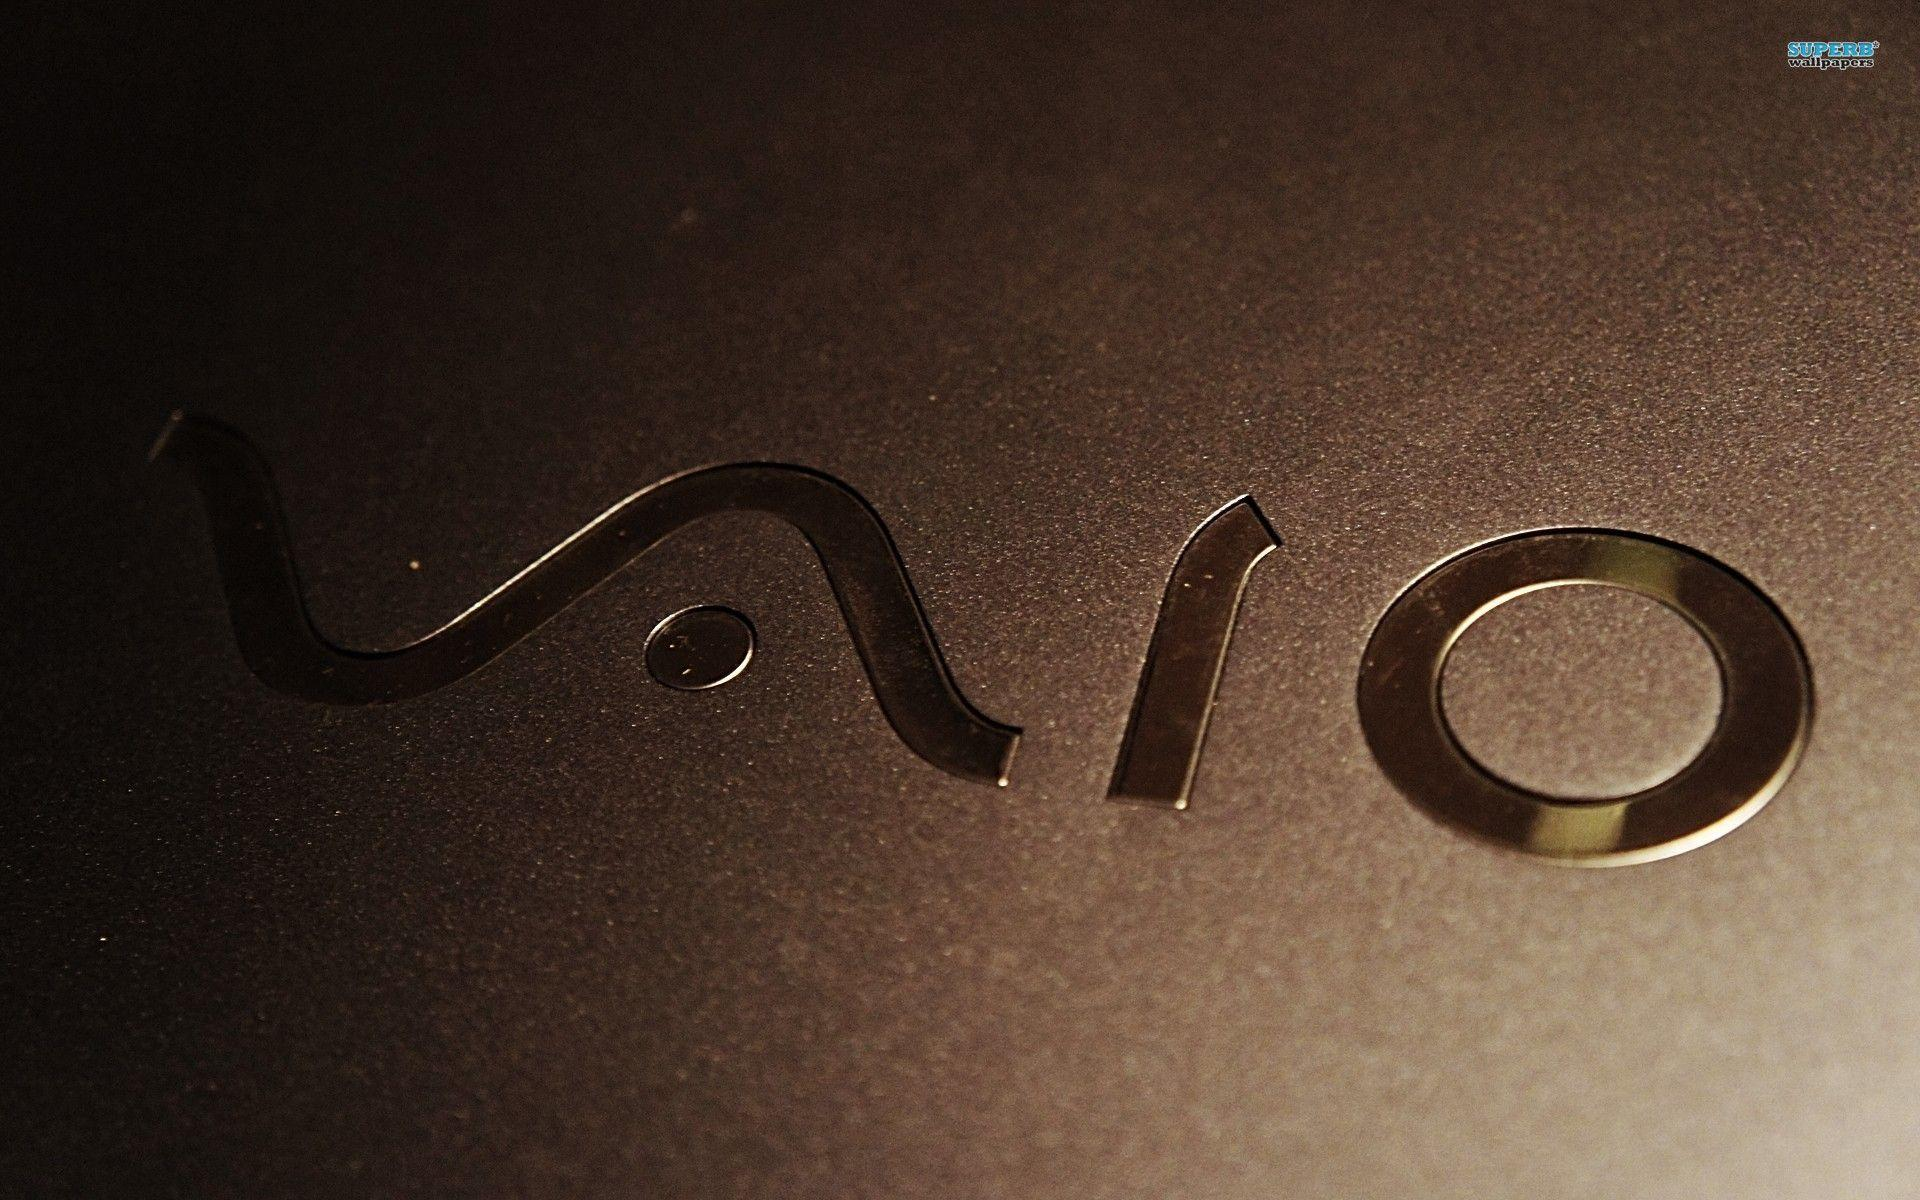 Sony Hd Wallpaper 74 Images: Vaio Wallpapers